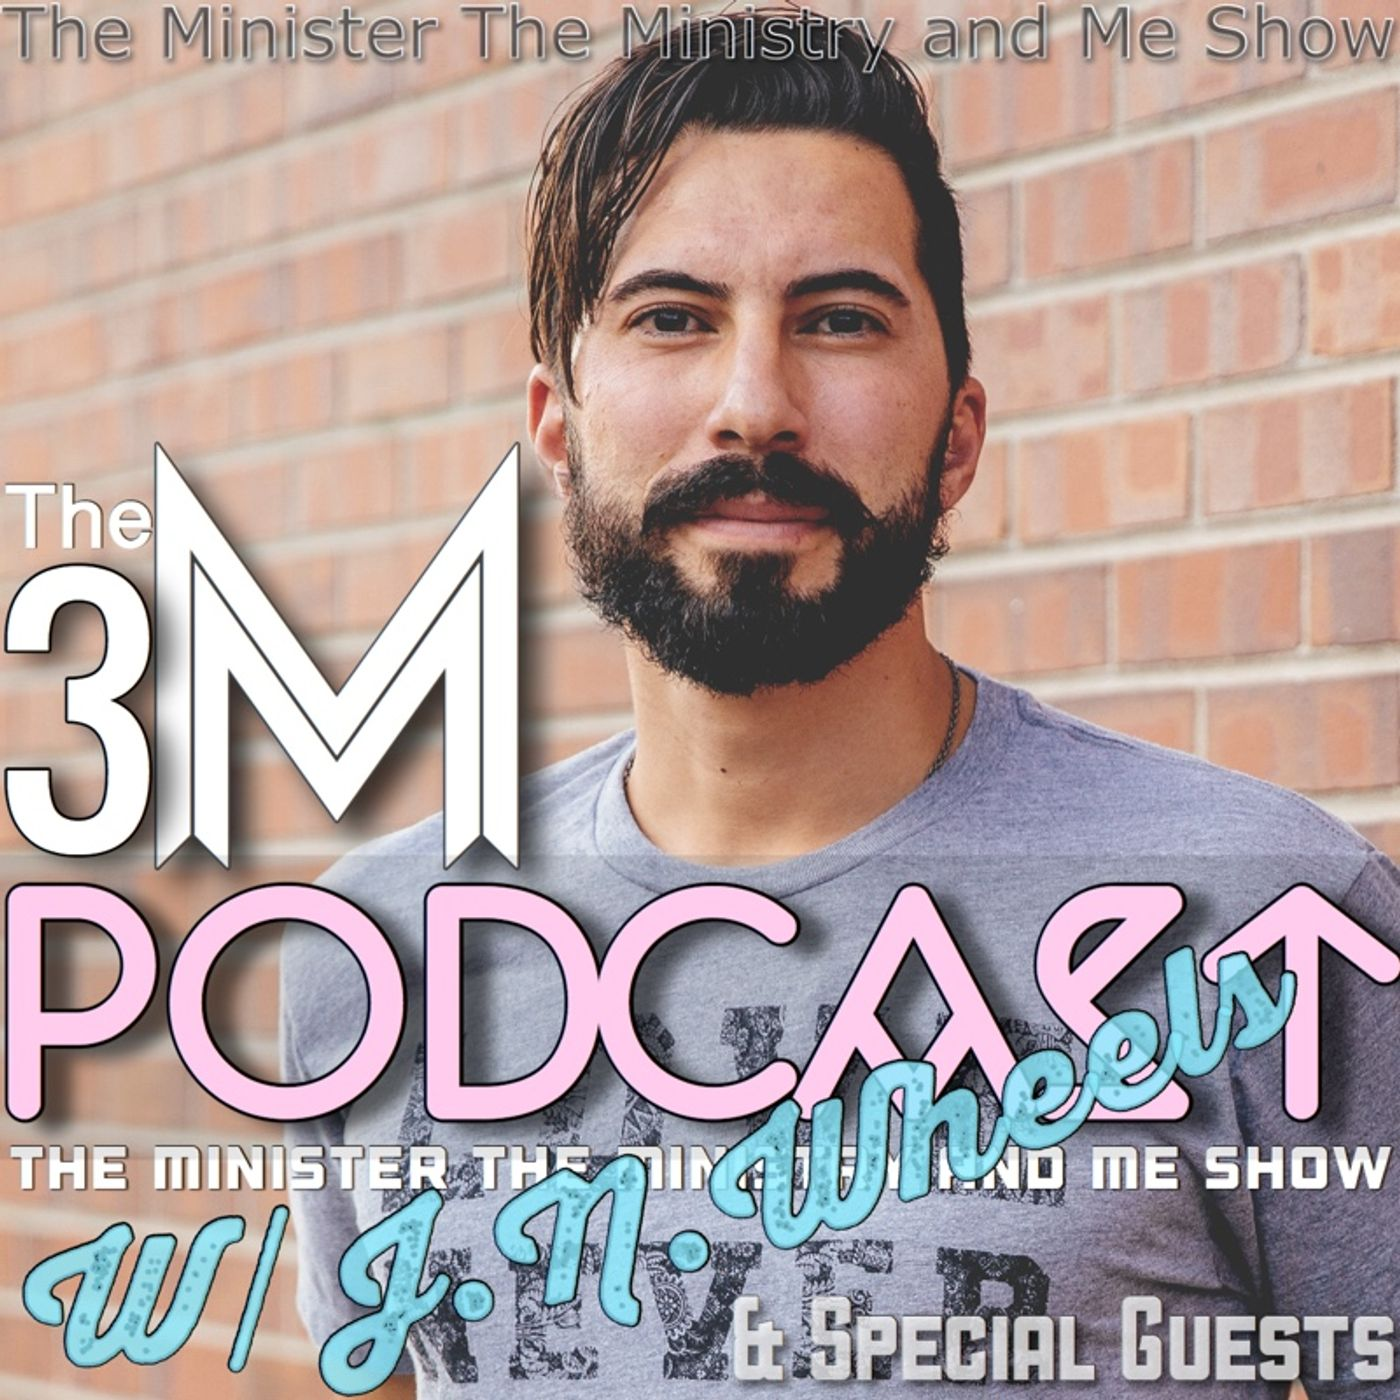 The Minister The Ministry & Me Show